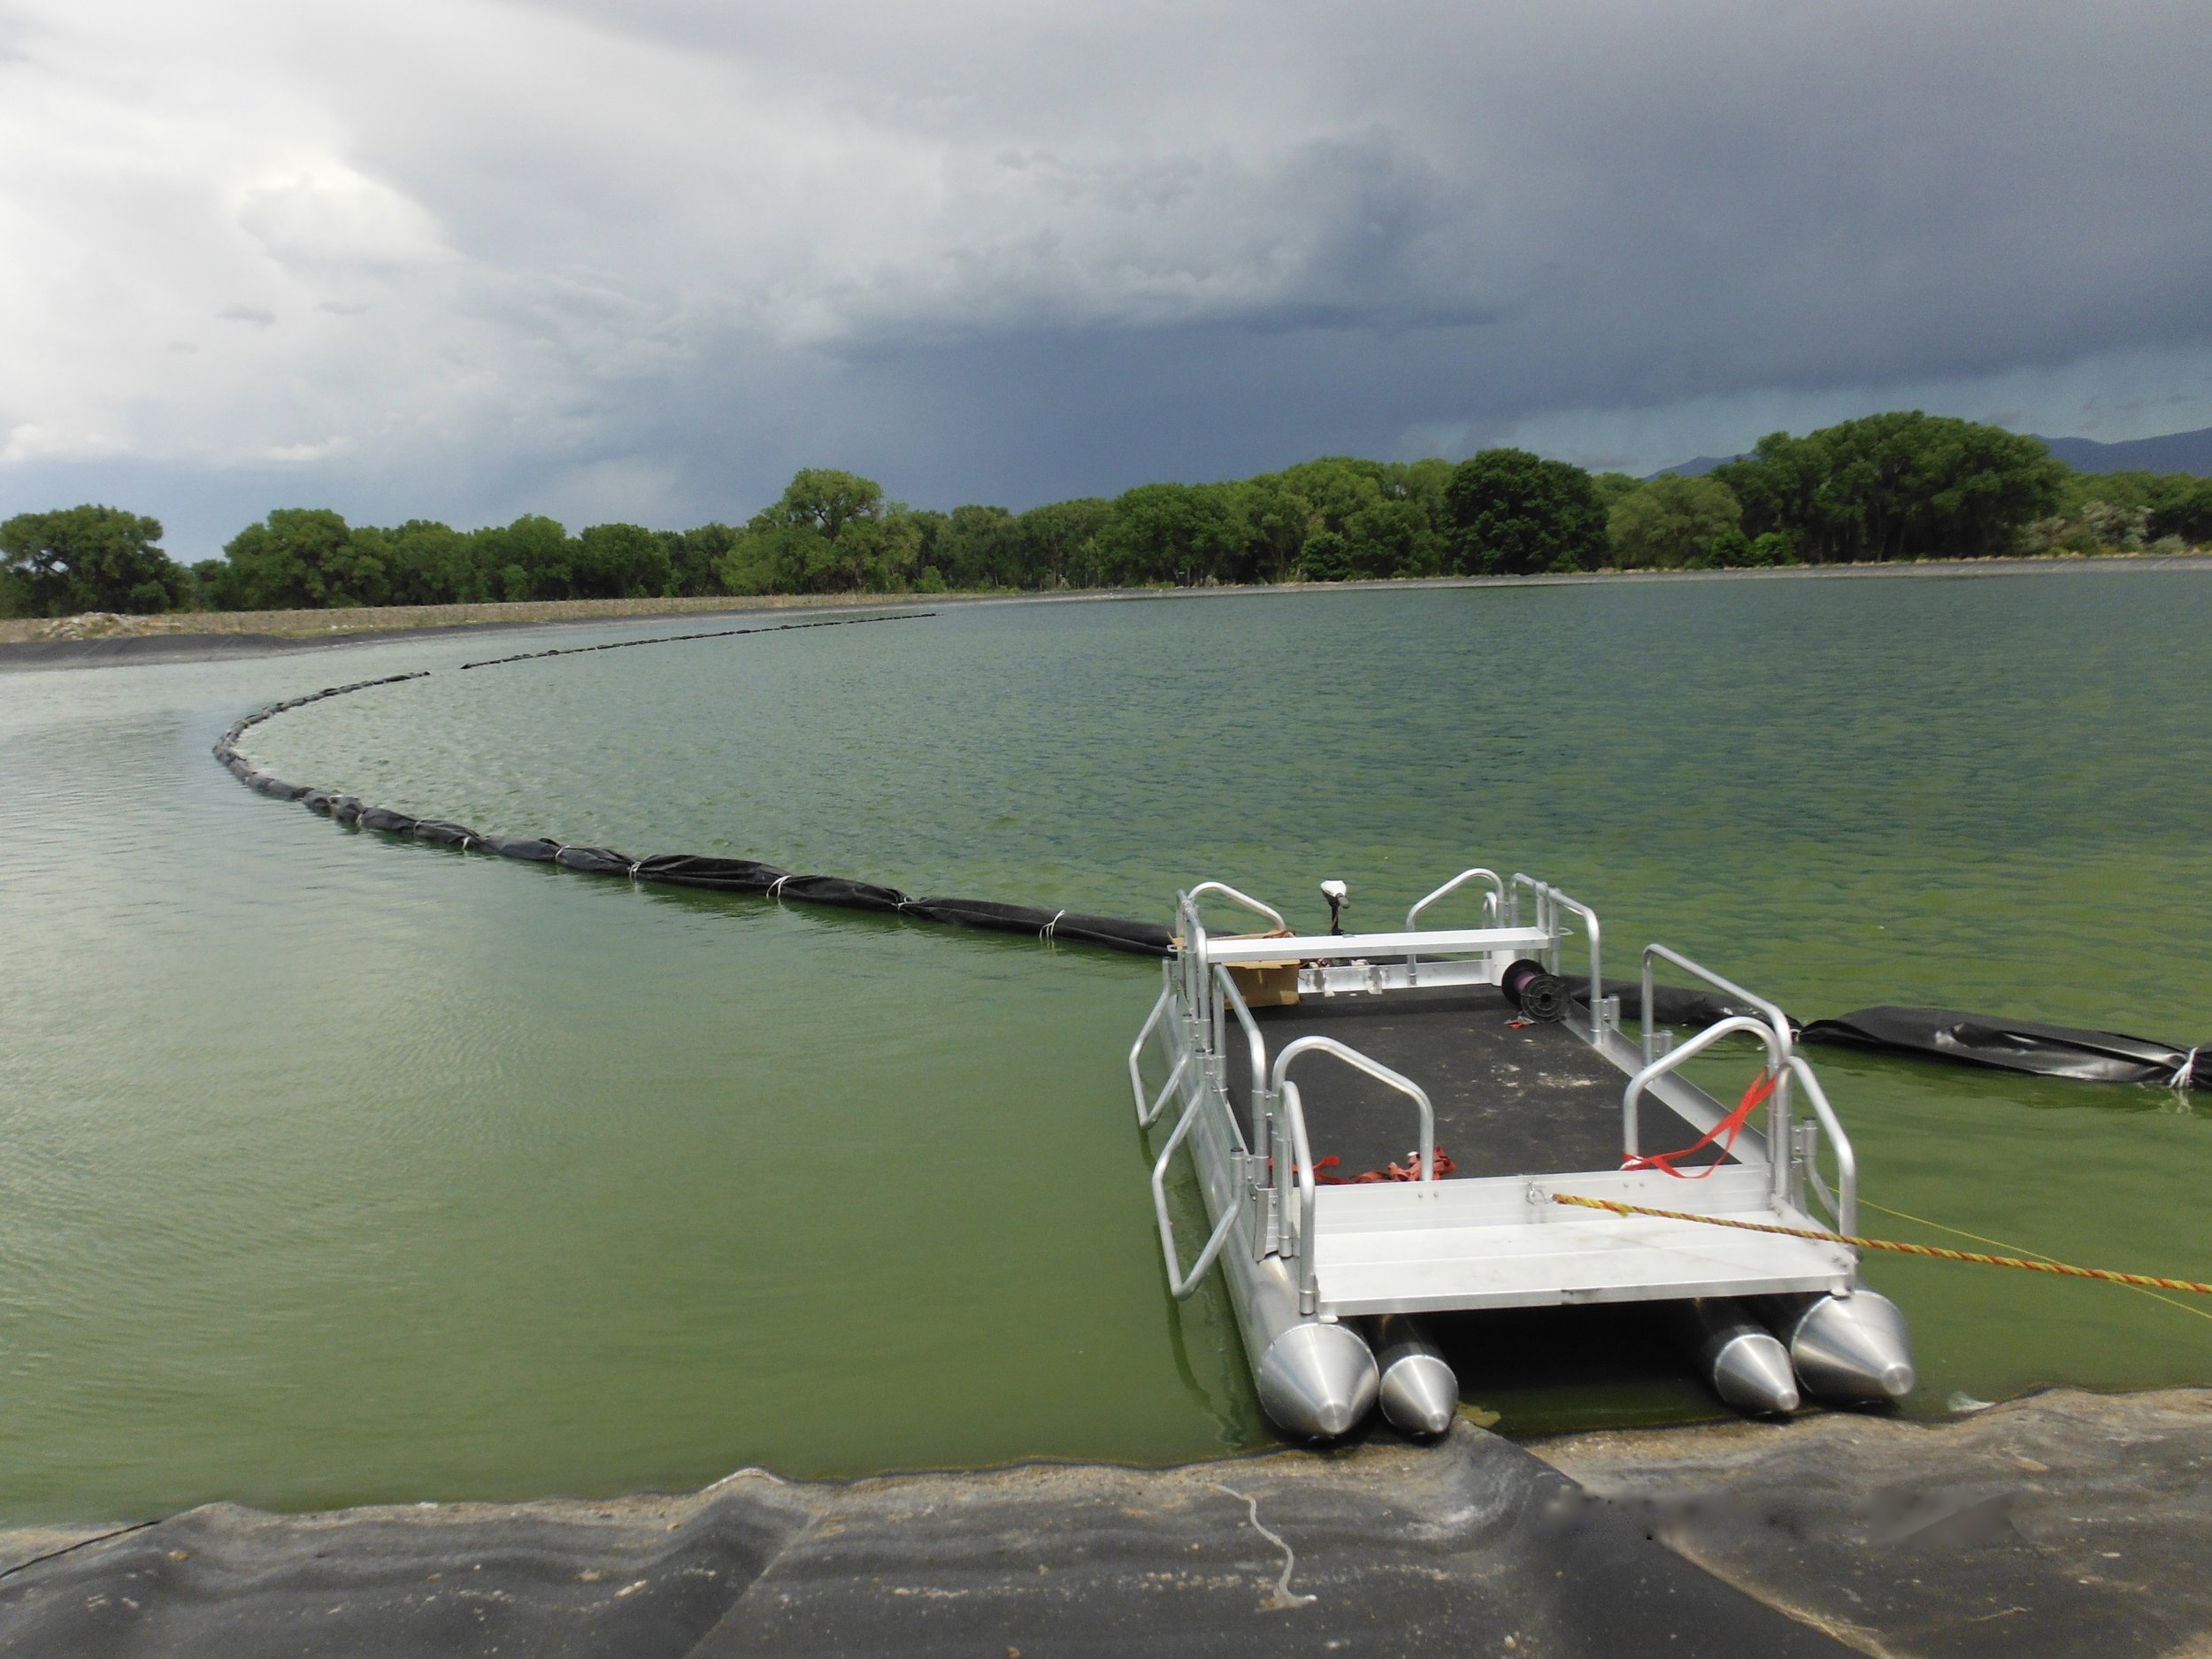 Fish N Sport being used in a water treatment plant in New Zealand. Yes, we ship our pontoon boats world wide to be used for recreation and as work platforms, as shown above.